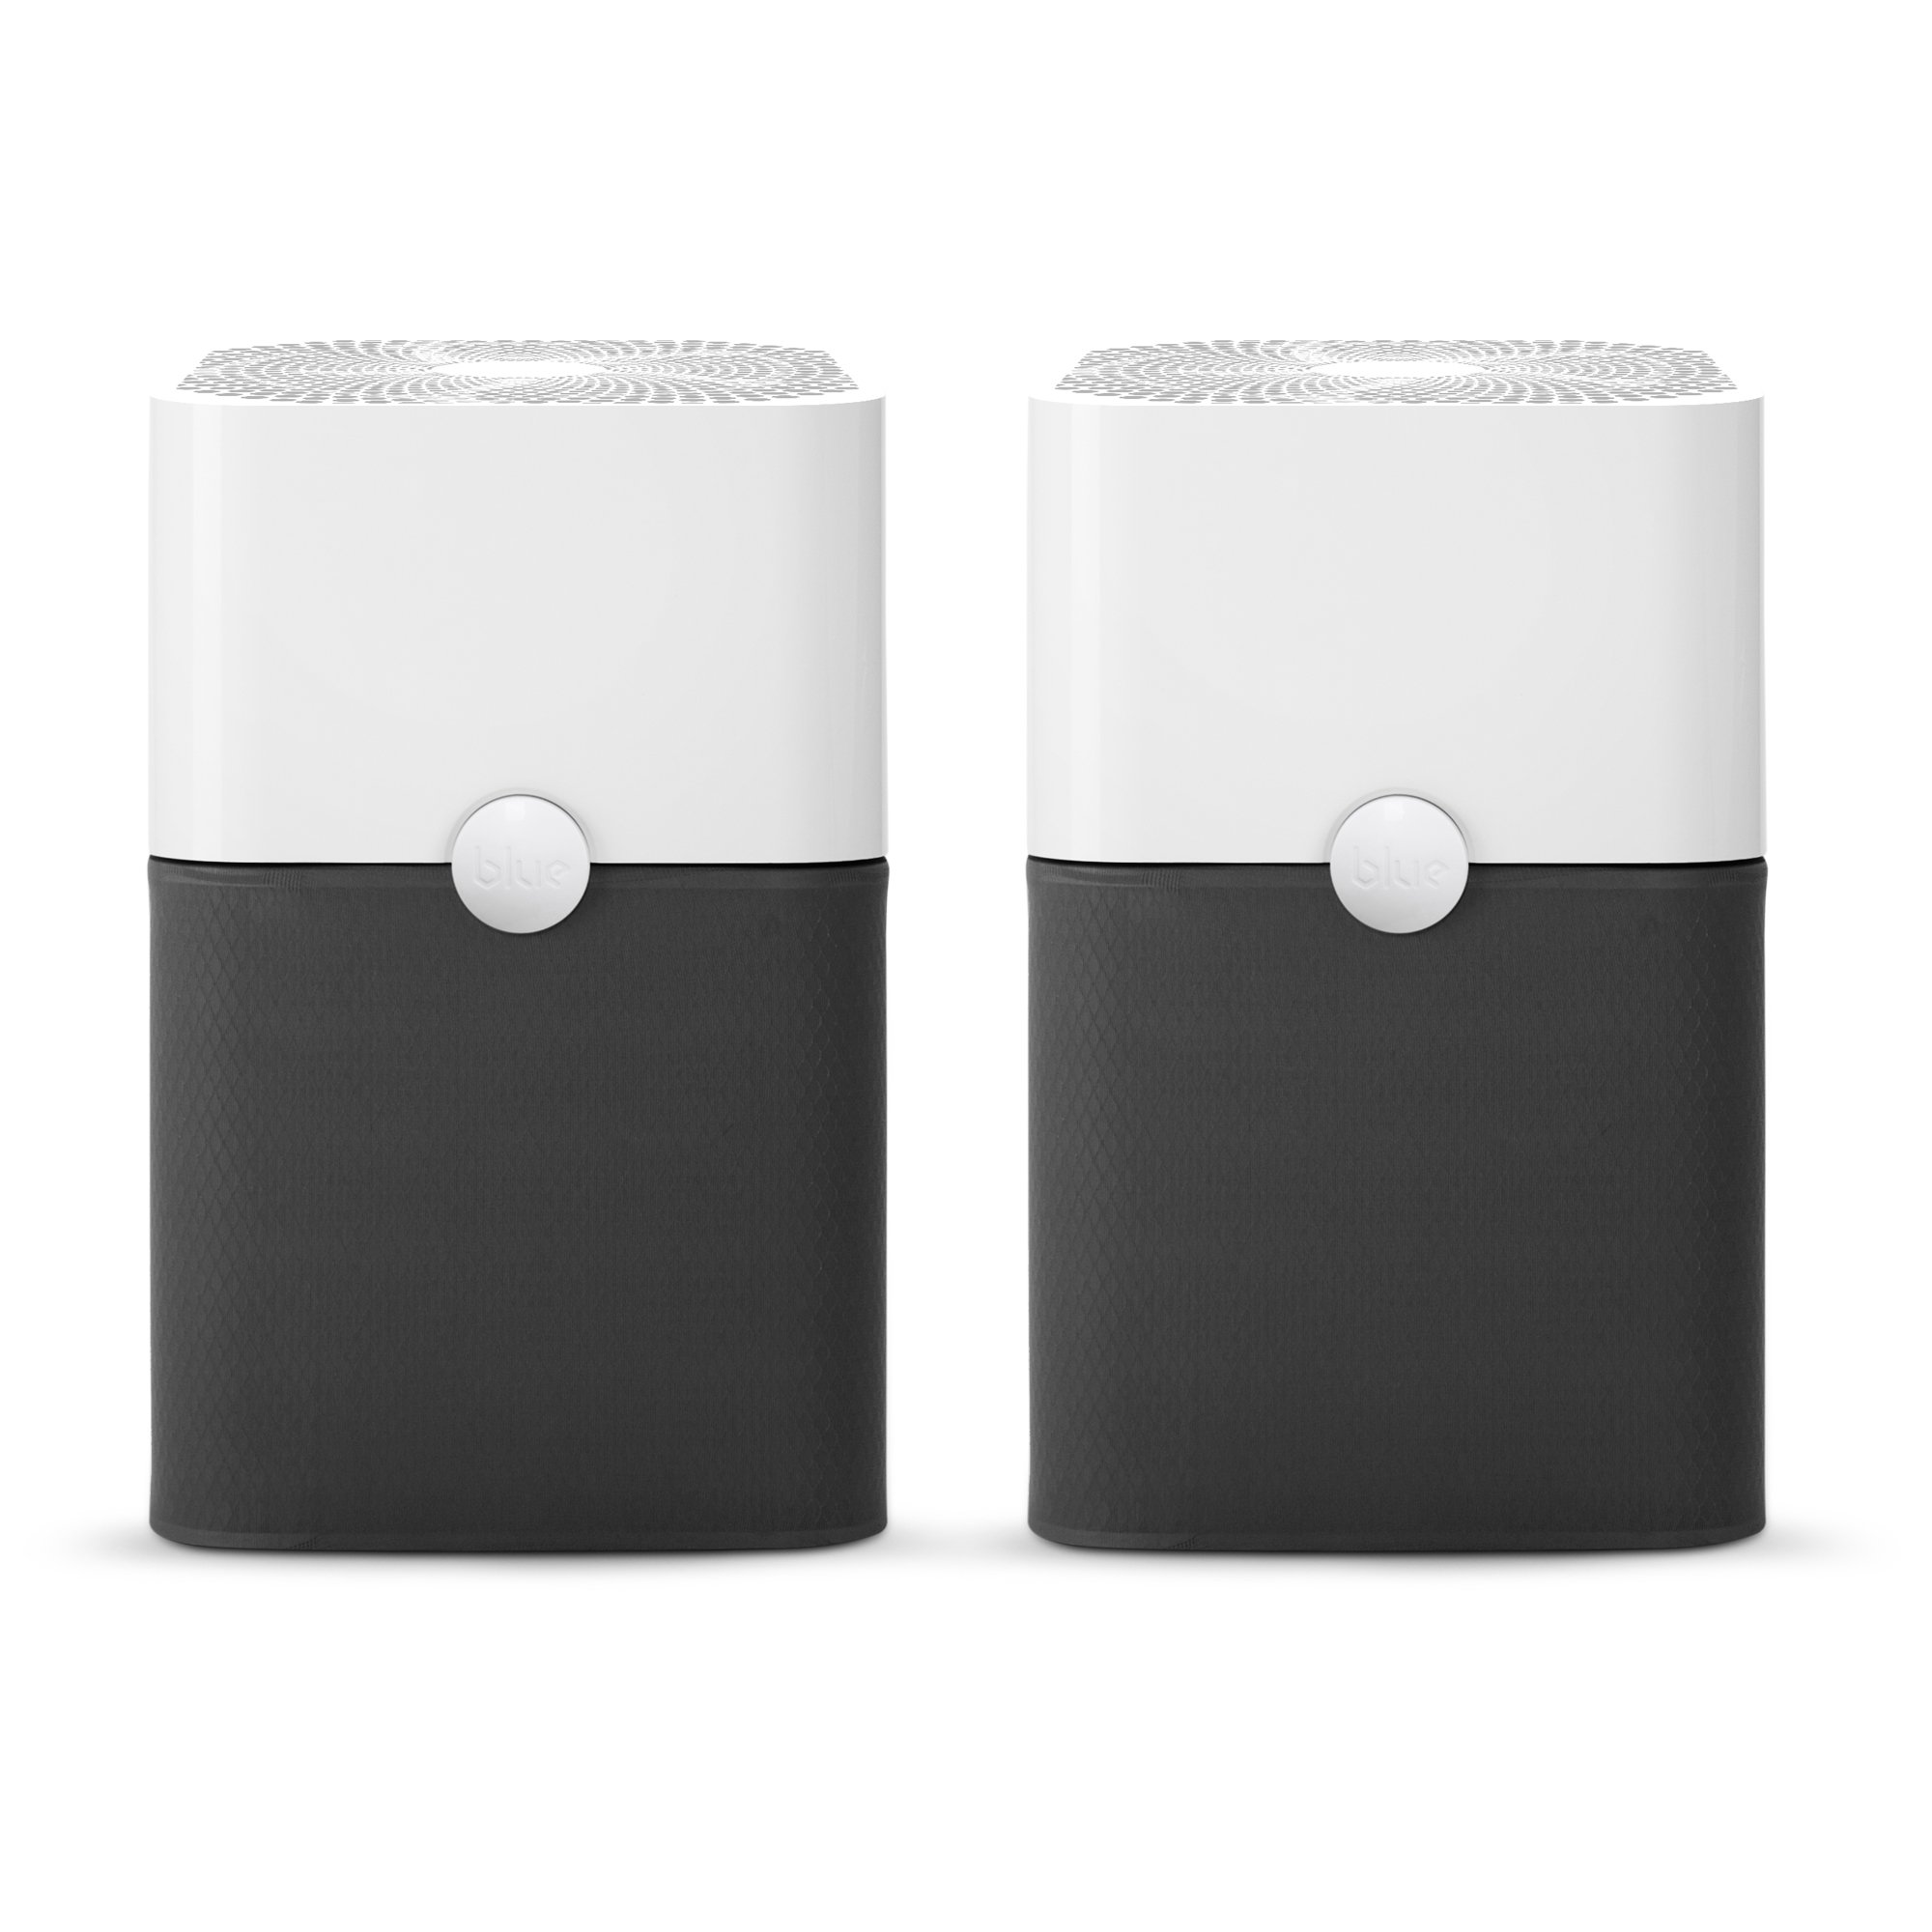 Blueair Blue Pure 211+ Air Purifier (2 pack) 3 Stage with Two Washable Pre-Filters, Particle, Carbon Filter, Captures Allergens, Viruses, Odors, Smoke, Mold, Dust, Germs, Pets, Smokers, Large Room